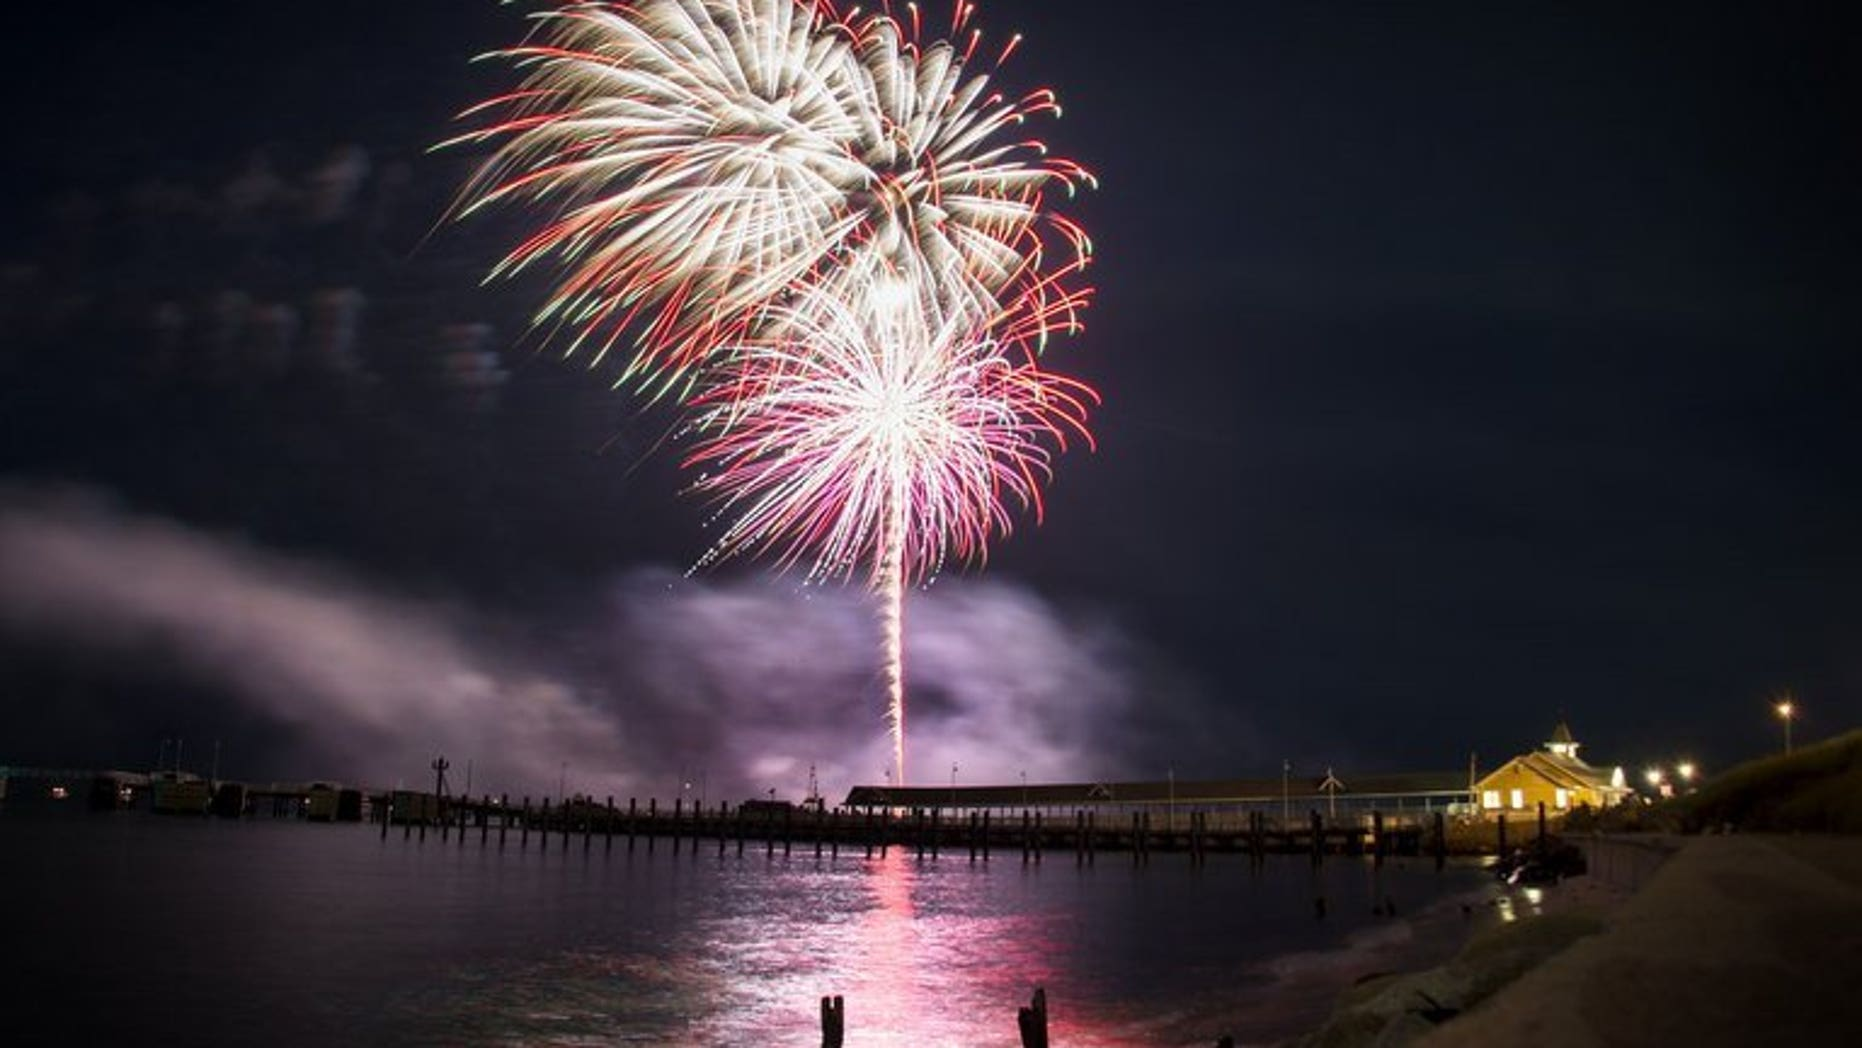 Fireworks go off over Oak Bluff Harbor in Oak Bluffs, Massachusetts, August 16, 2013. A 44-year-old woman who suffered severe burns in an explosion at a fireworks festival in western Japan two days ago became the first person to die from the accident on Saturday, police said.